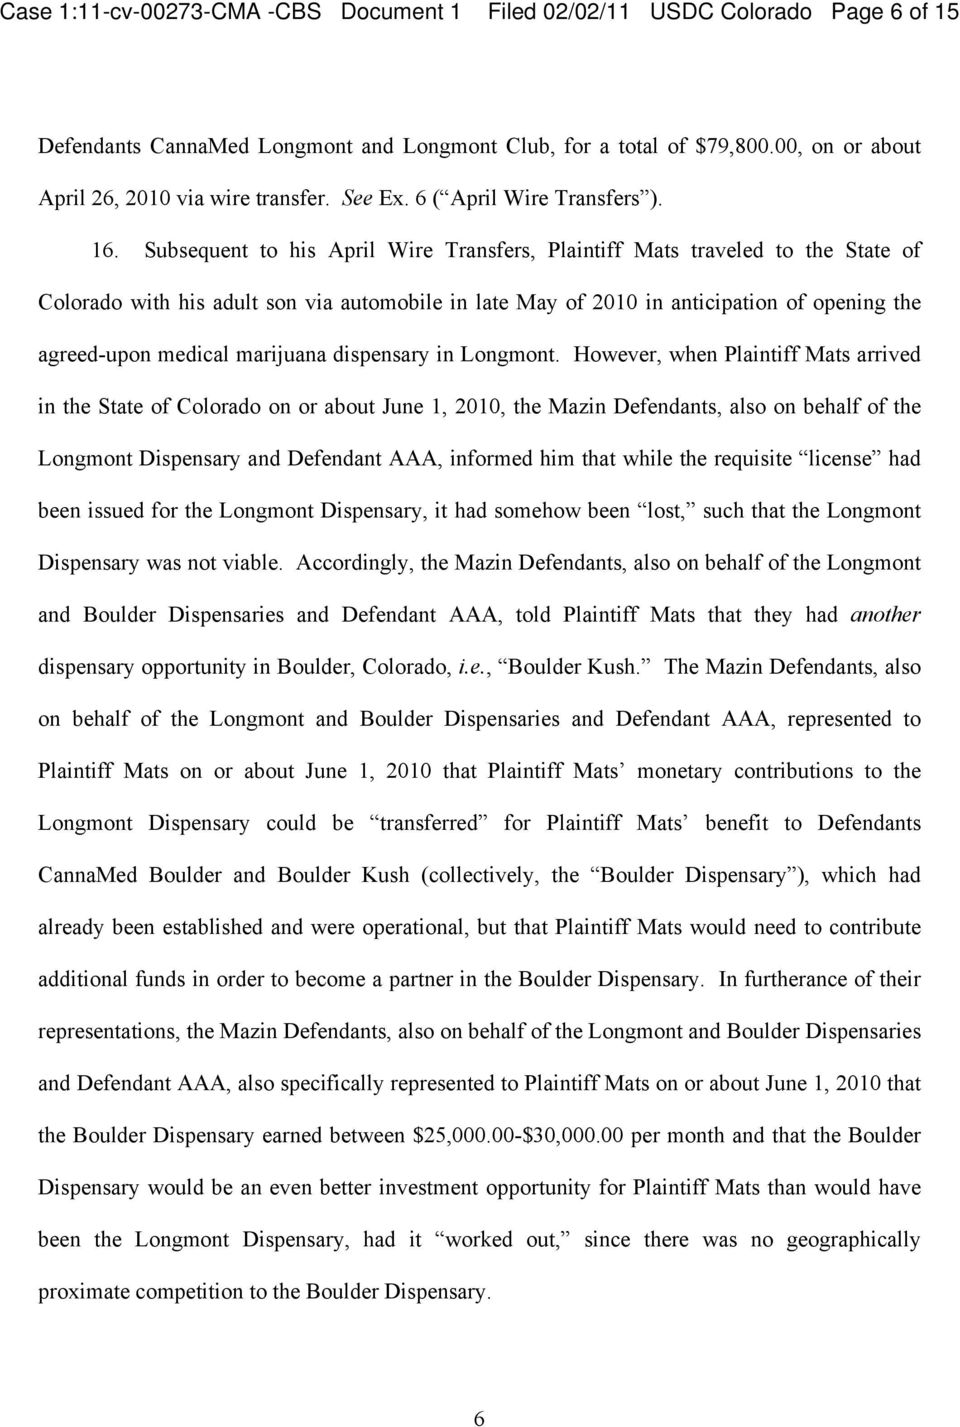 Subsequent to his April Wire Transfers, Plaintiff Mats traveled to the State of Colorado with his adult son via automobile in late May of 2010 in anticipation of opening the agreed-upon medical